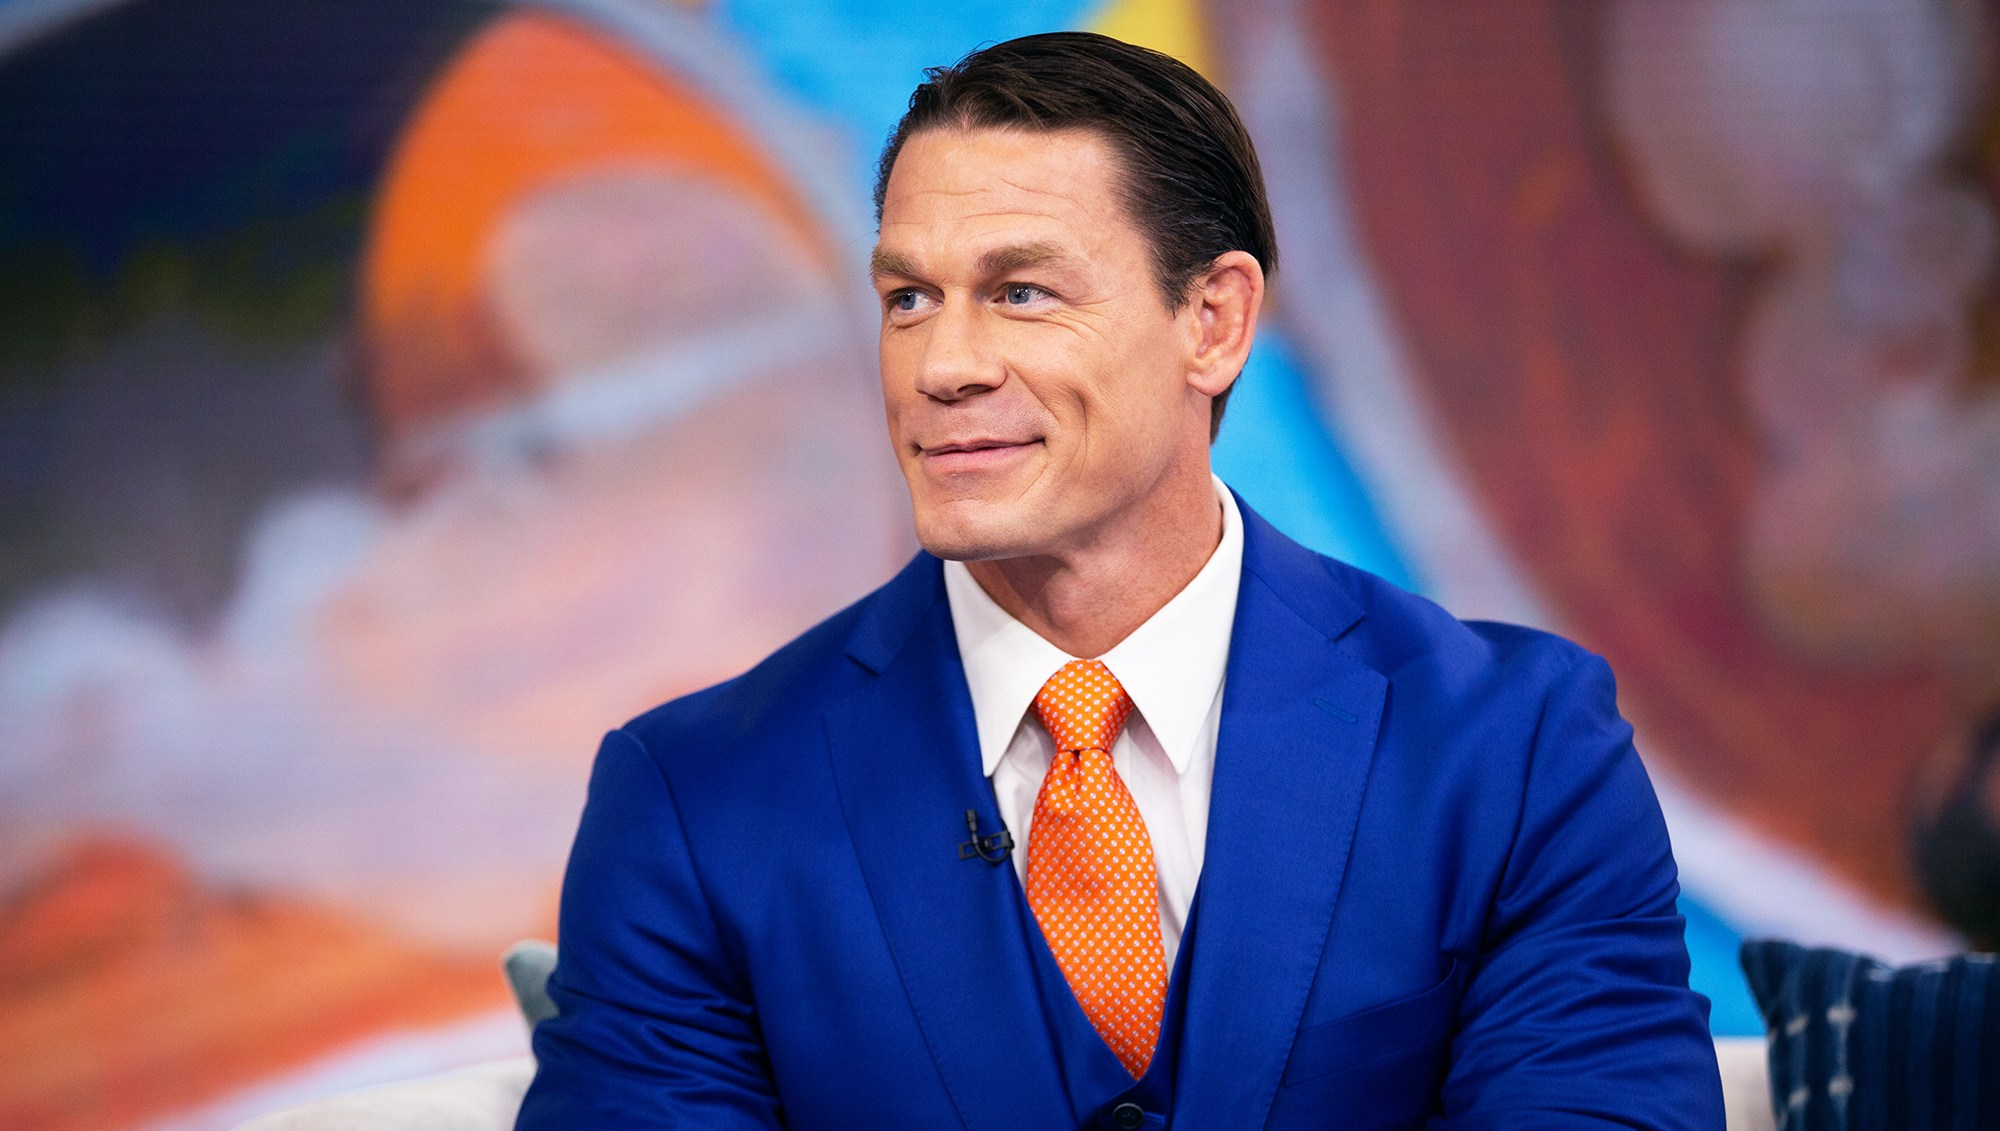 John Cena's New Haircut Has Fans Confused